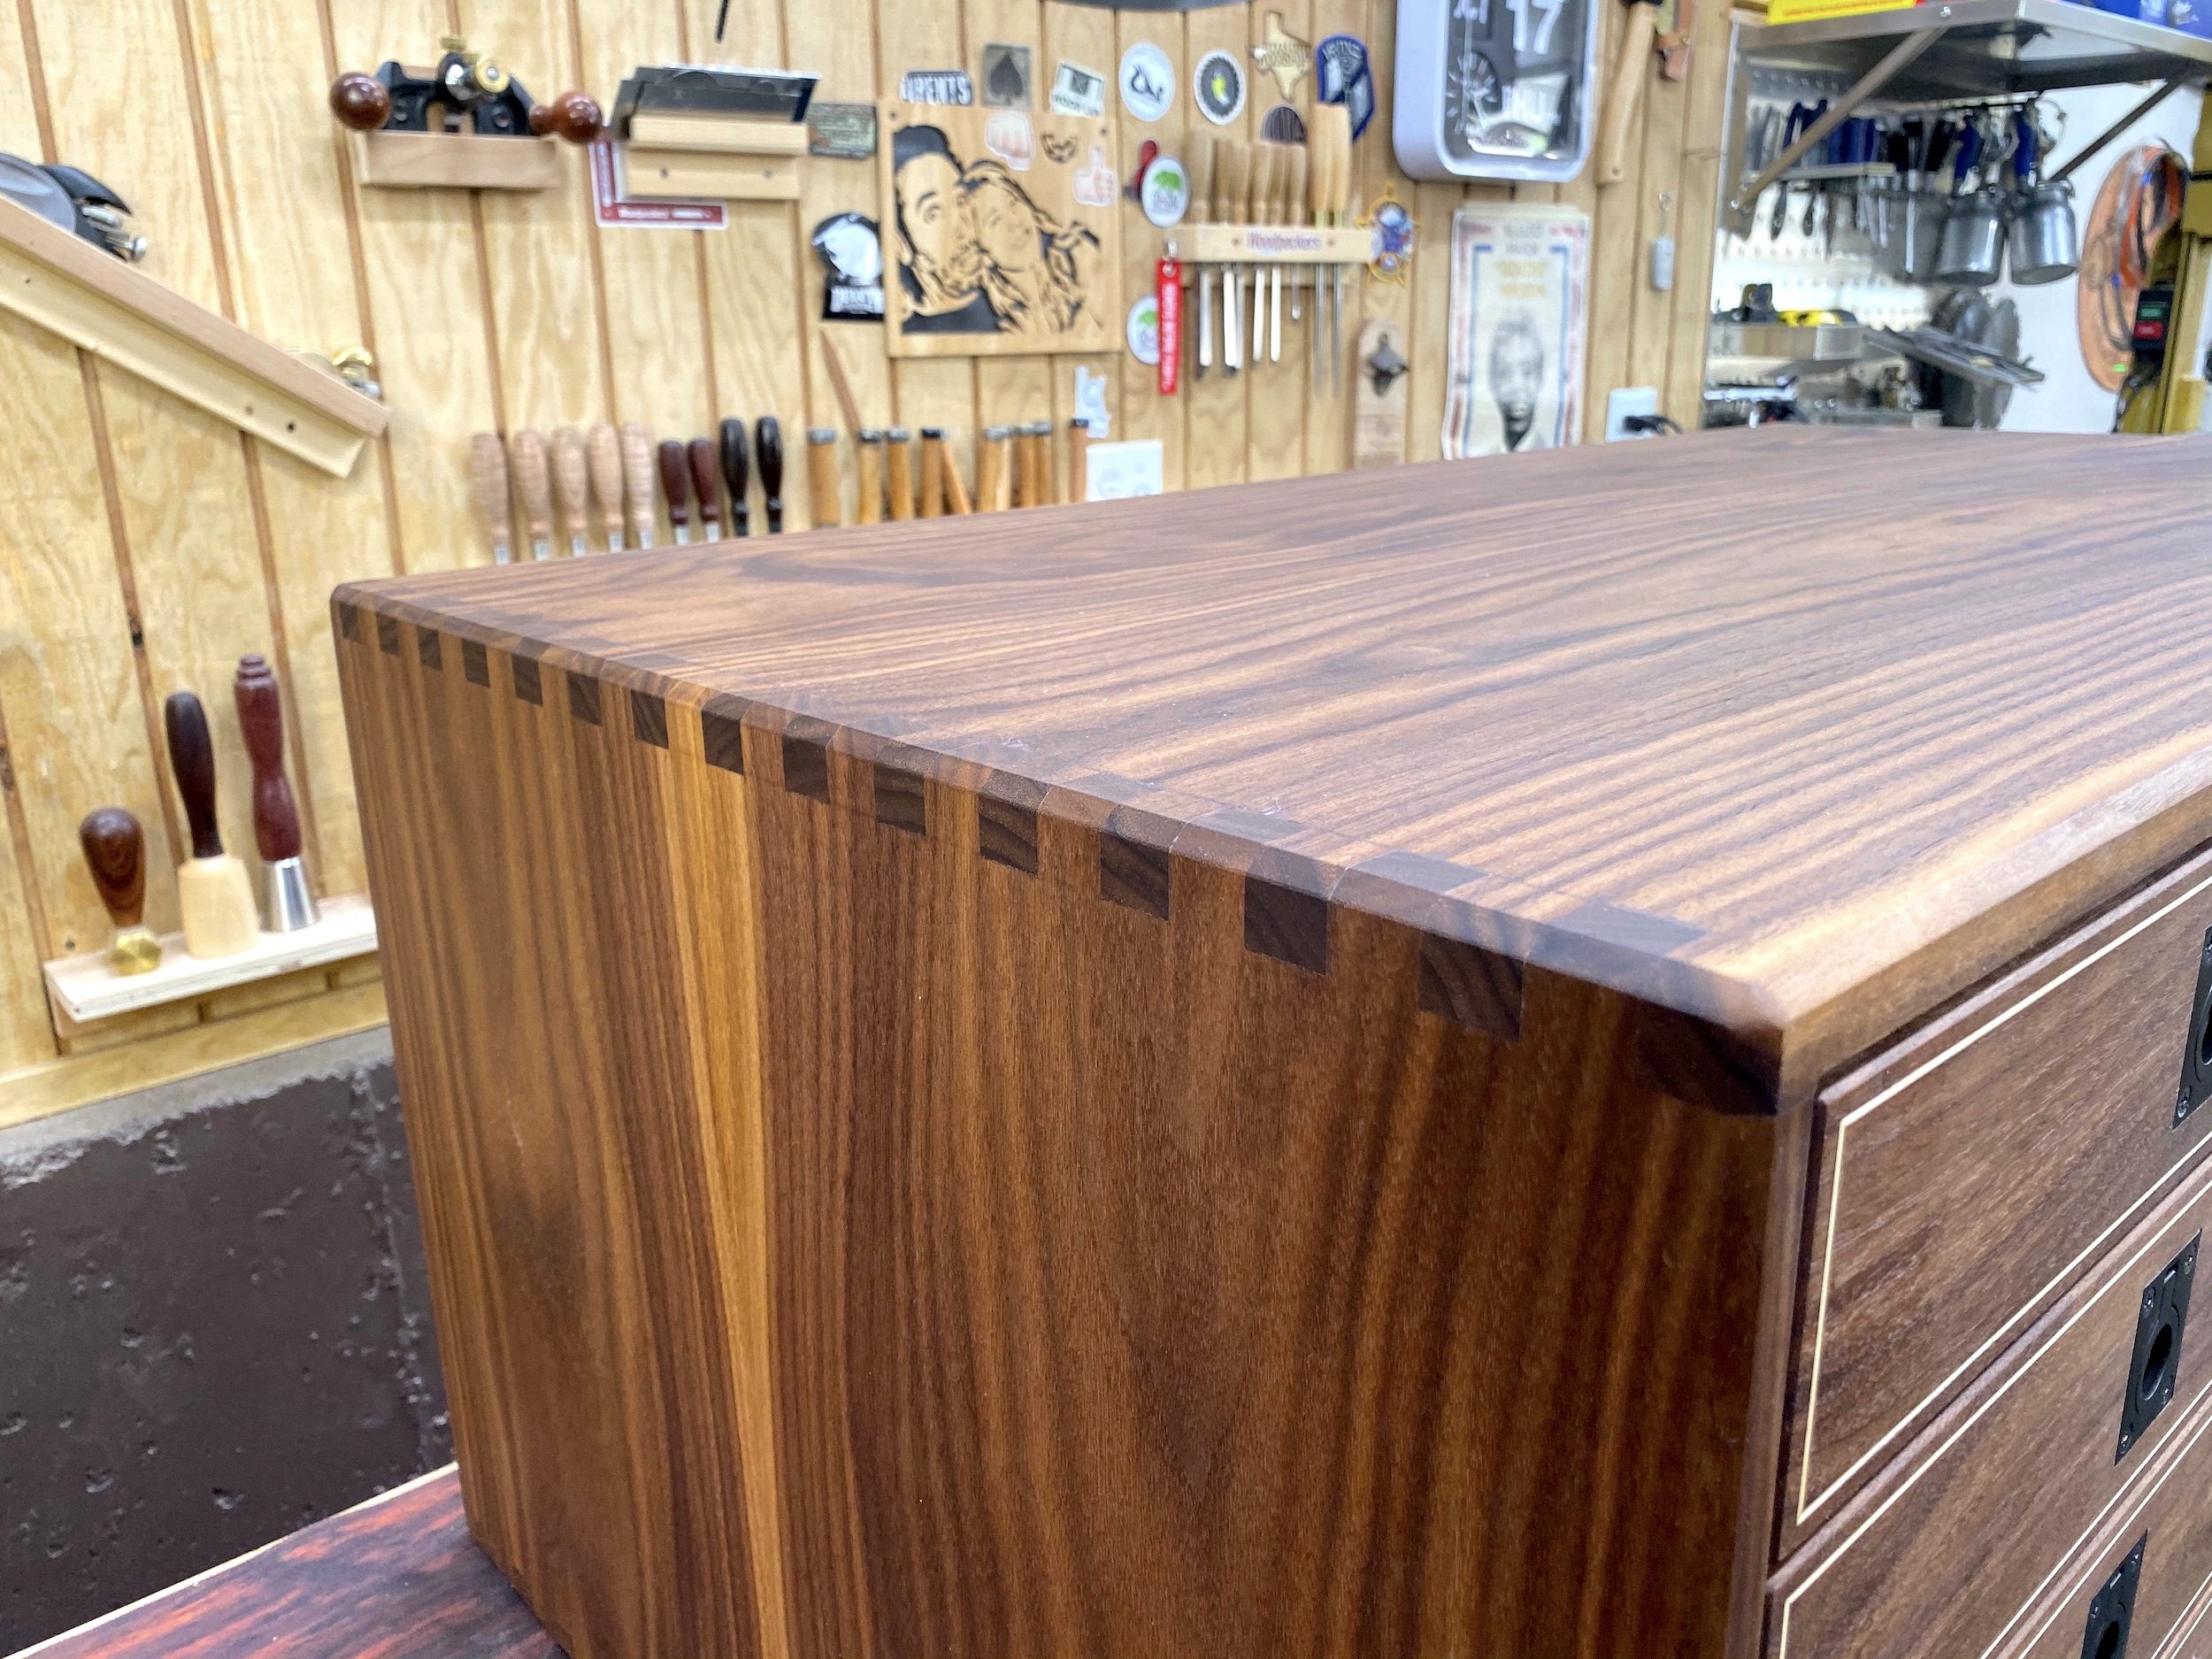 Swell Workbench Cabinet The Wood Whisperer Guild Gmtry Best Dining Table And Chair Ideas Images Gmtryco